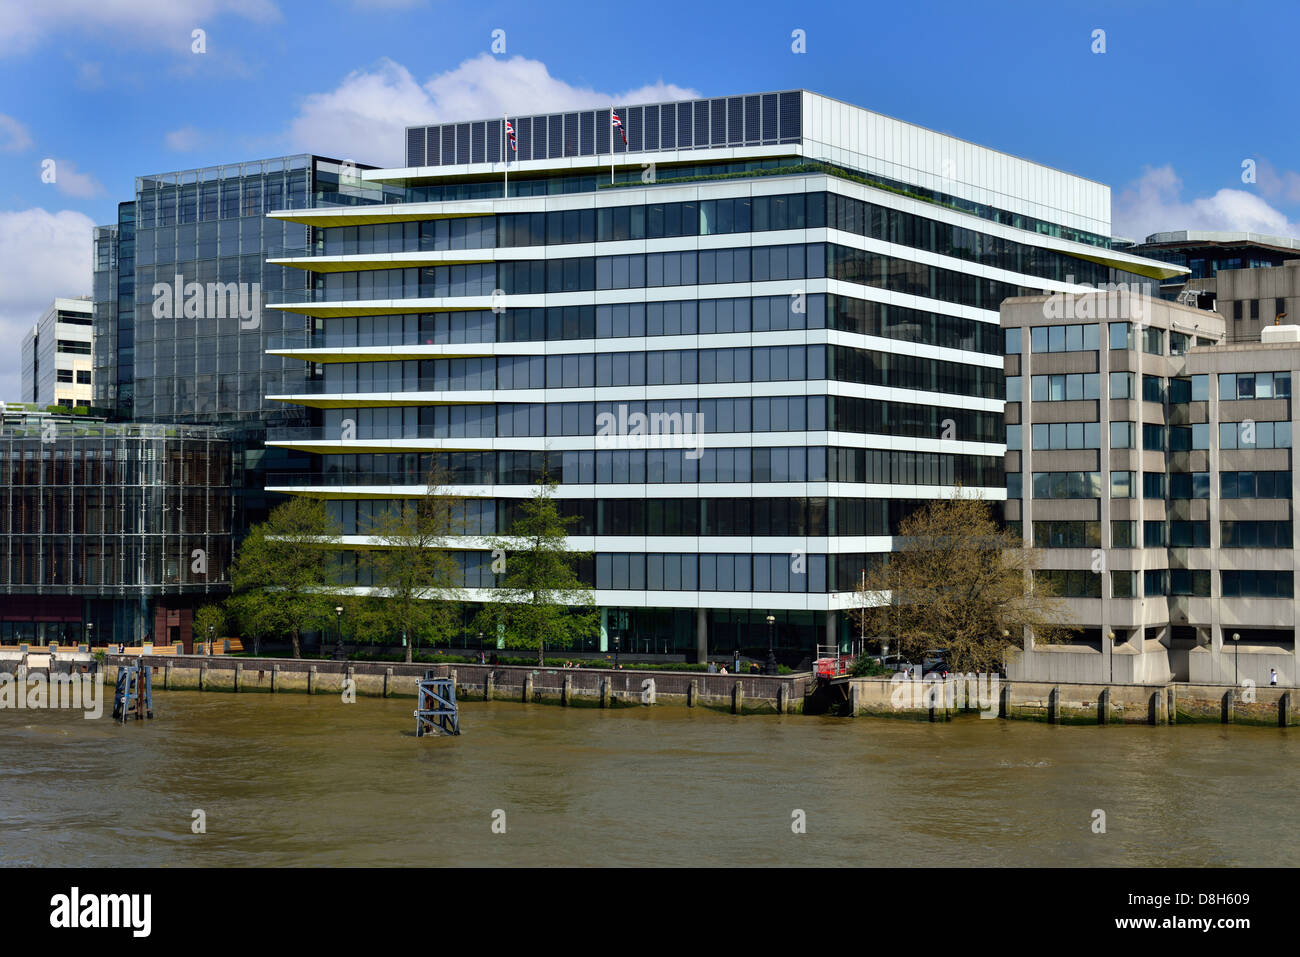 Riverbank House, 2 Swan Lane, London EC4R, United Kingdom - Stock Image